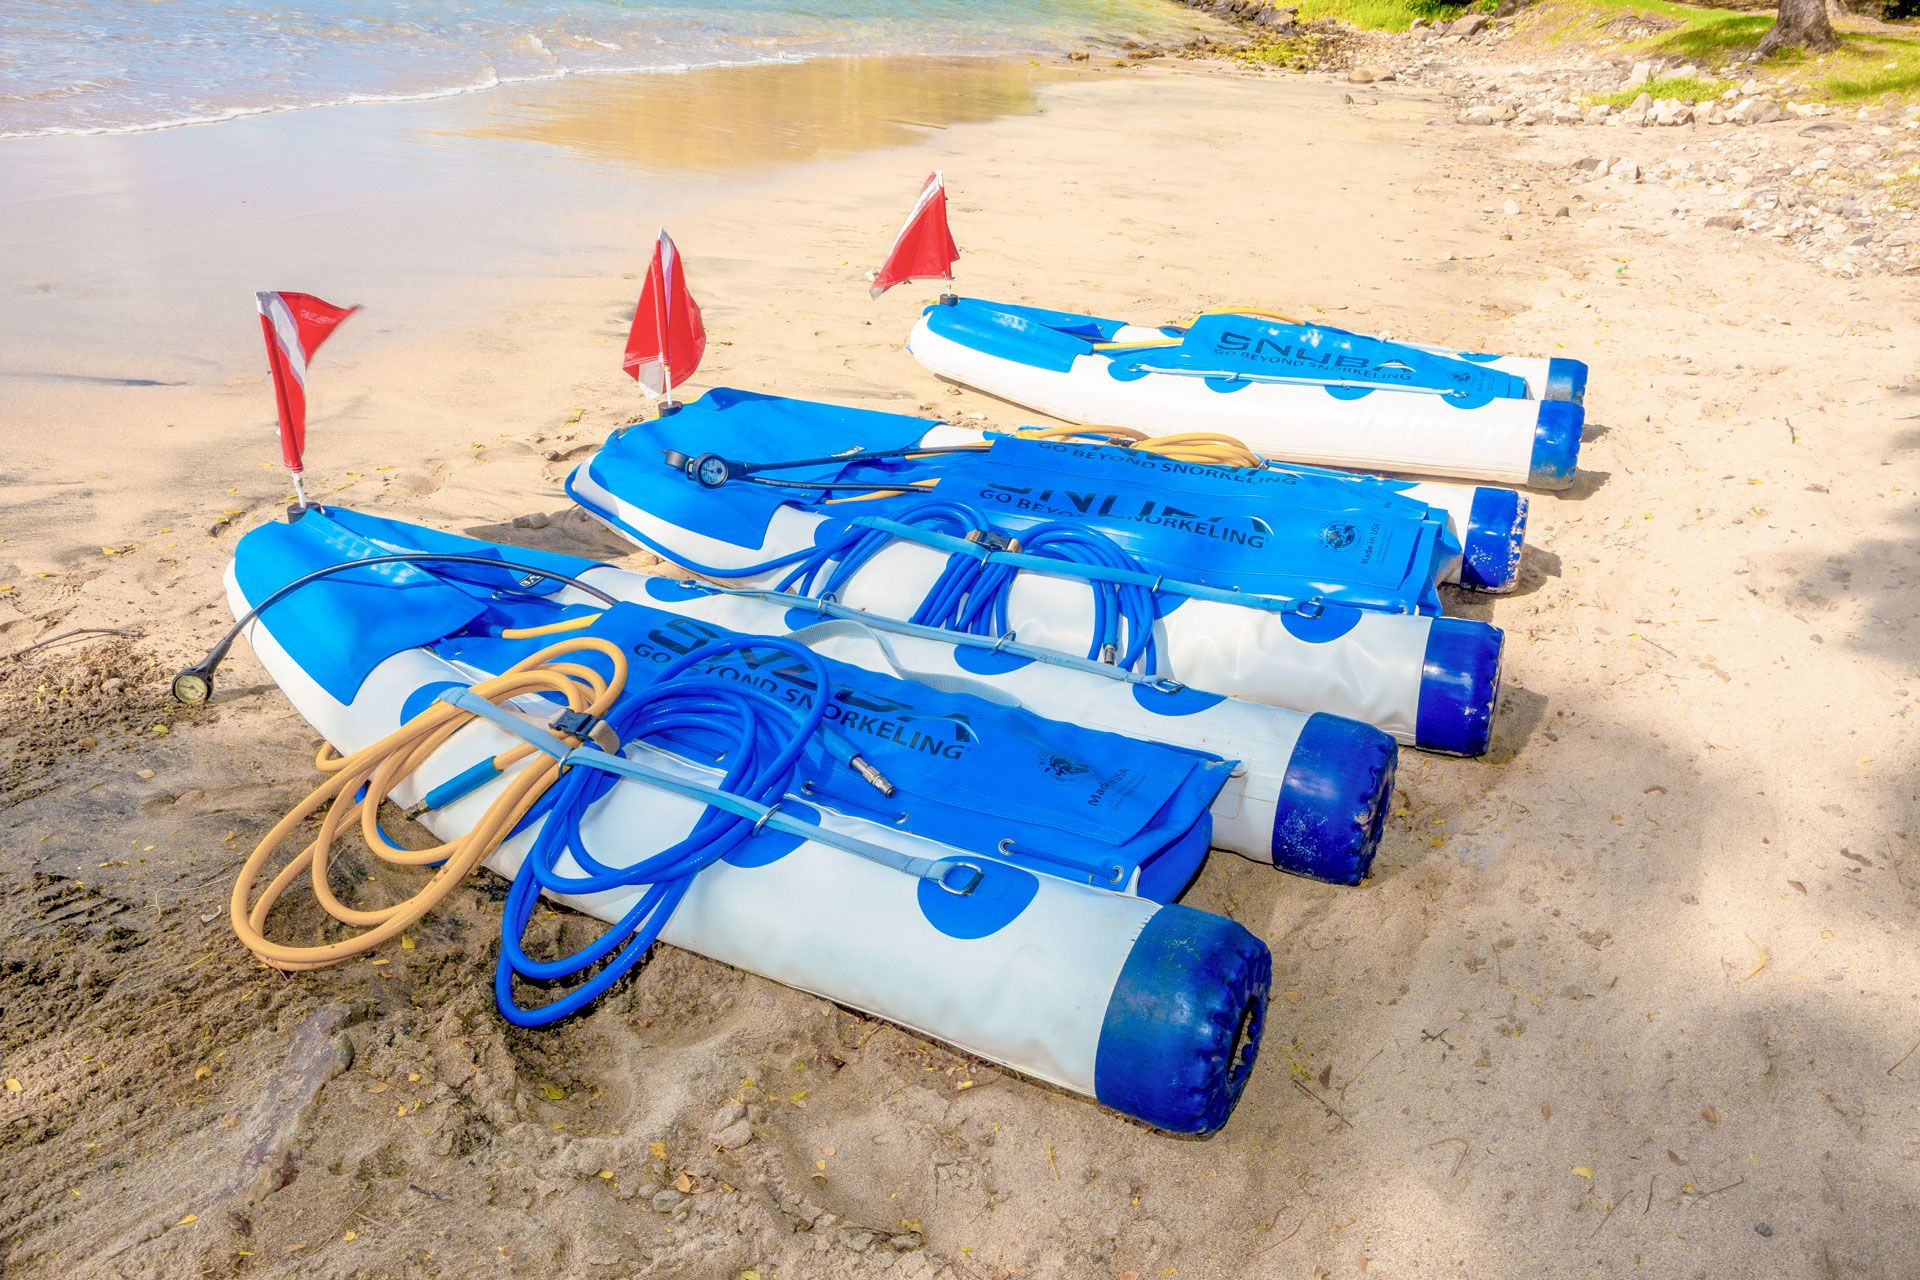 Three SNUBA® rafts on beach